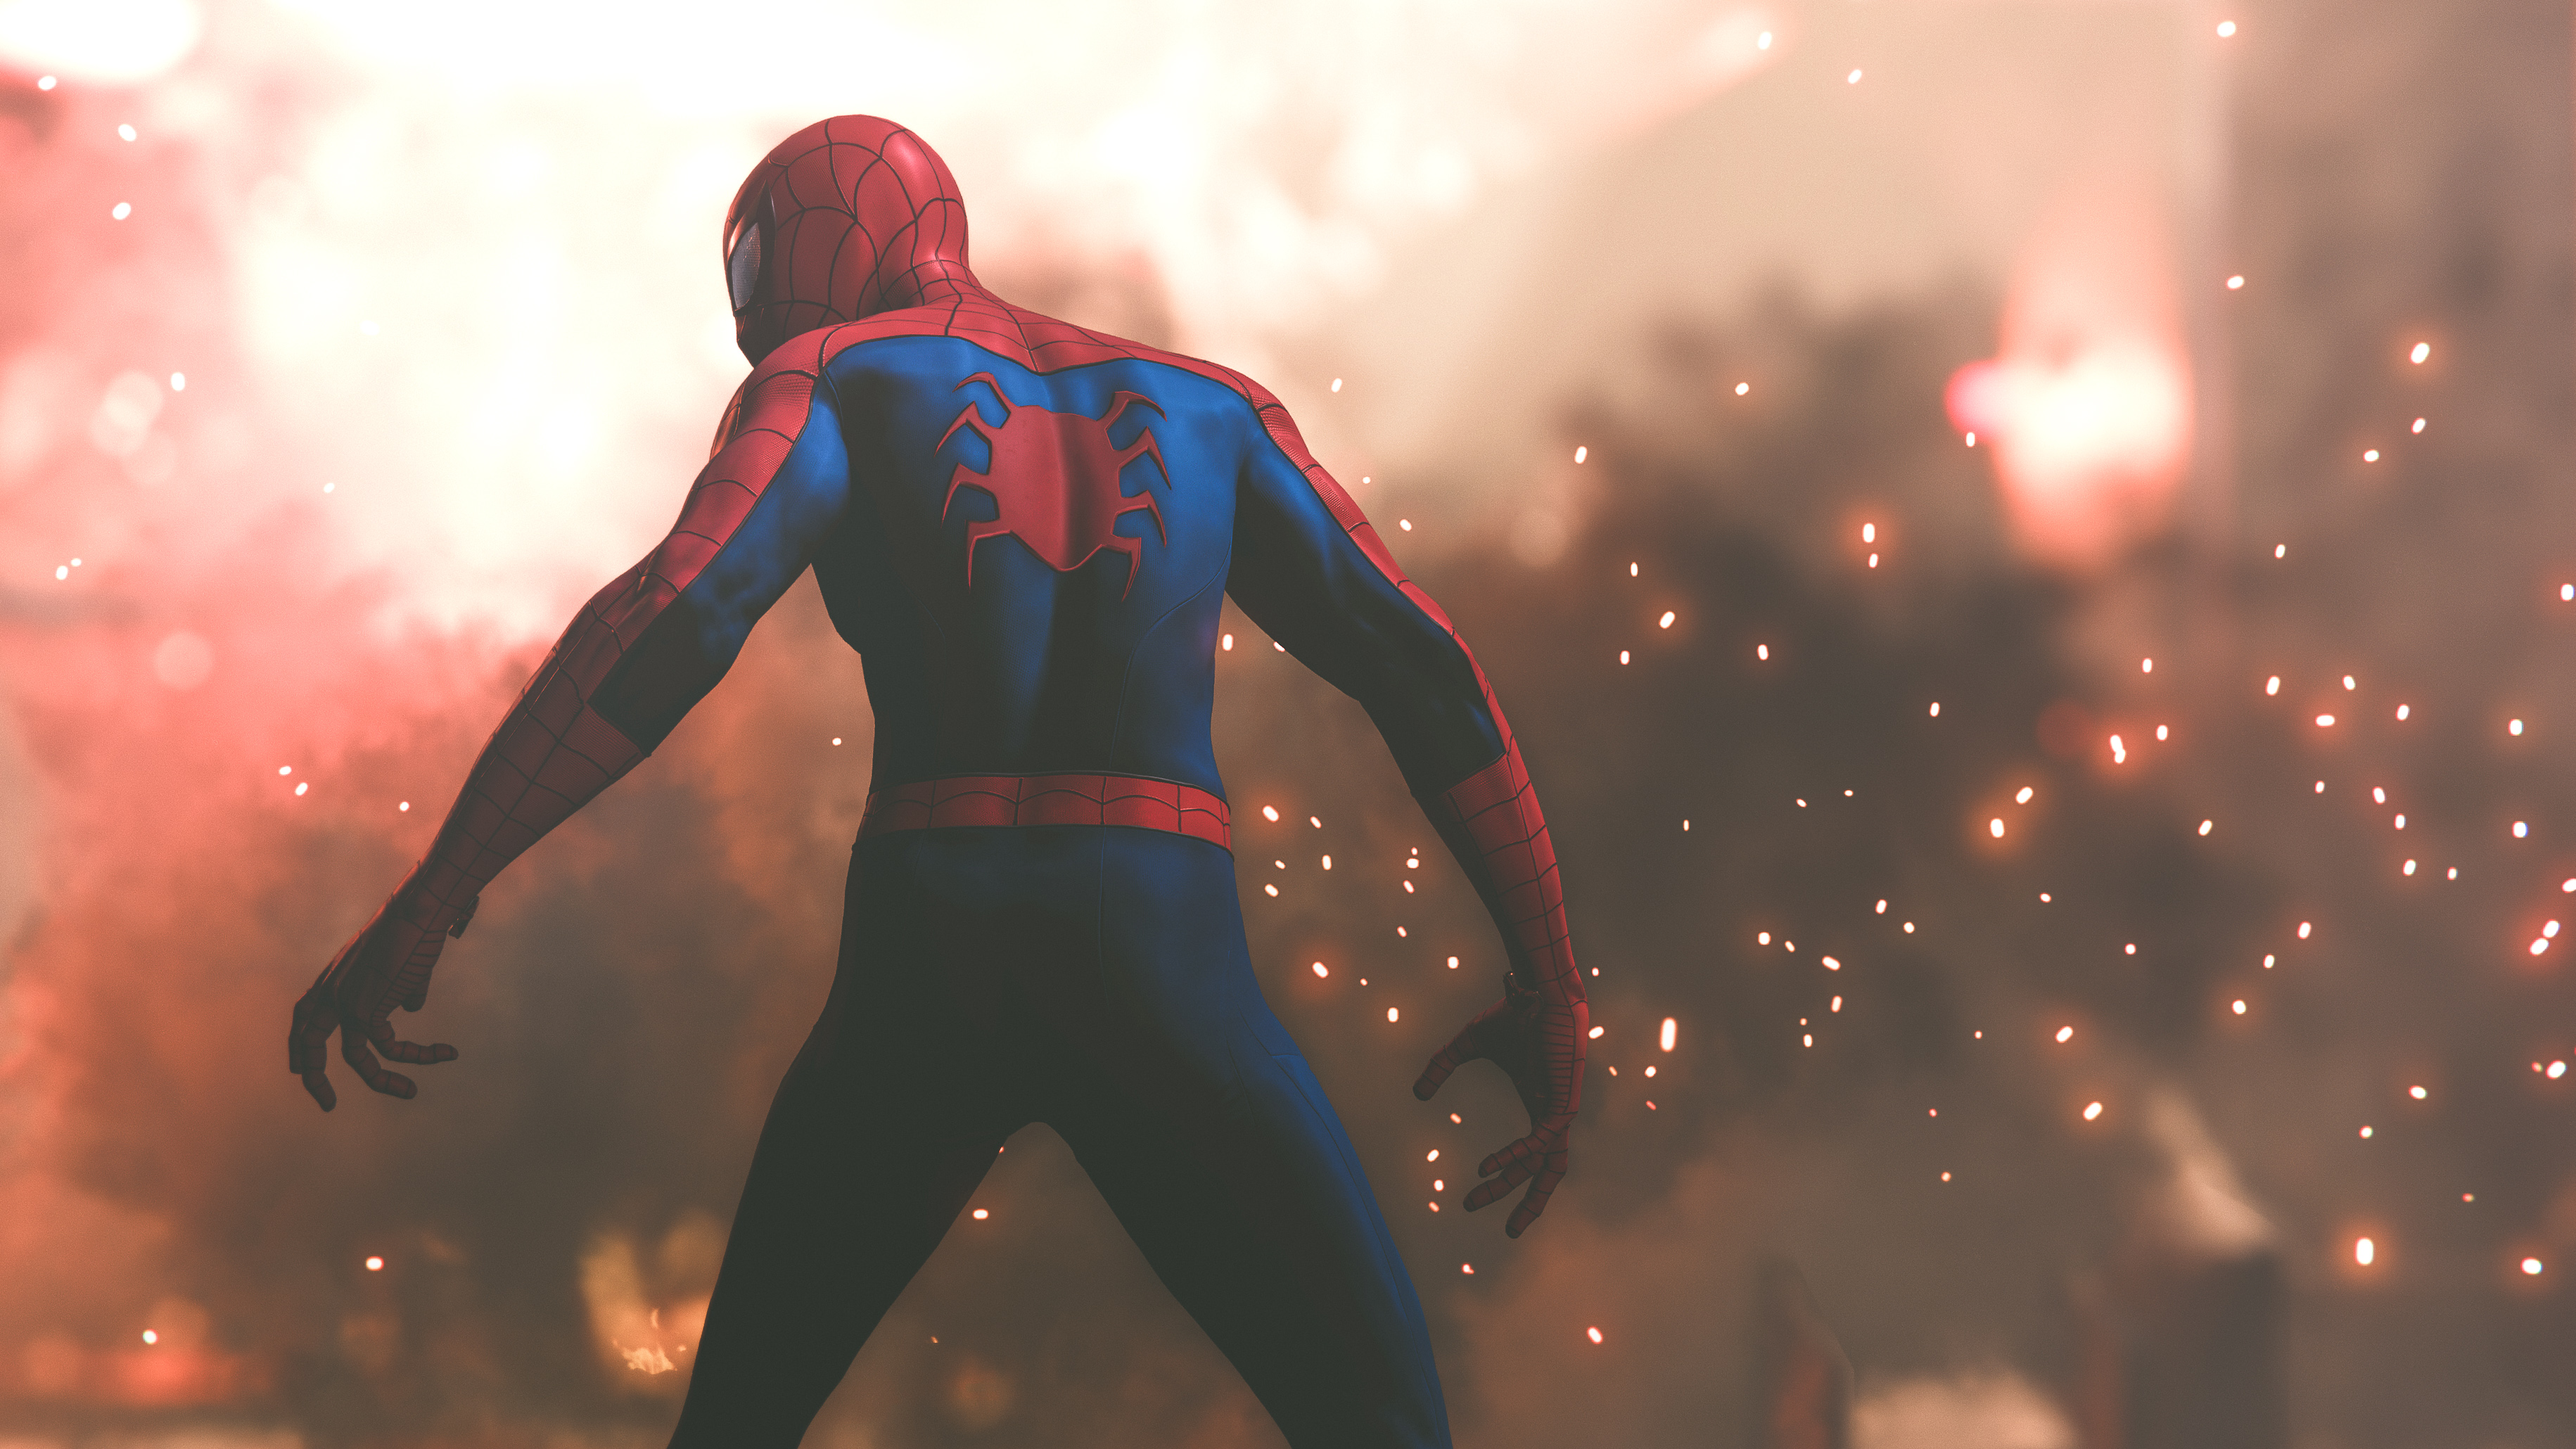 4k spiderman game, hd games, 4k wallpapers, images, backgrounds